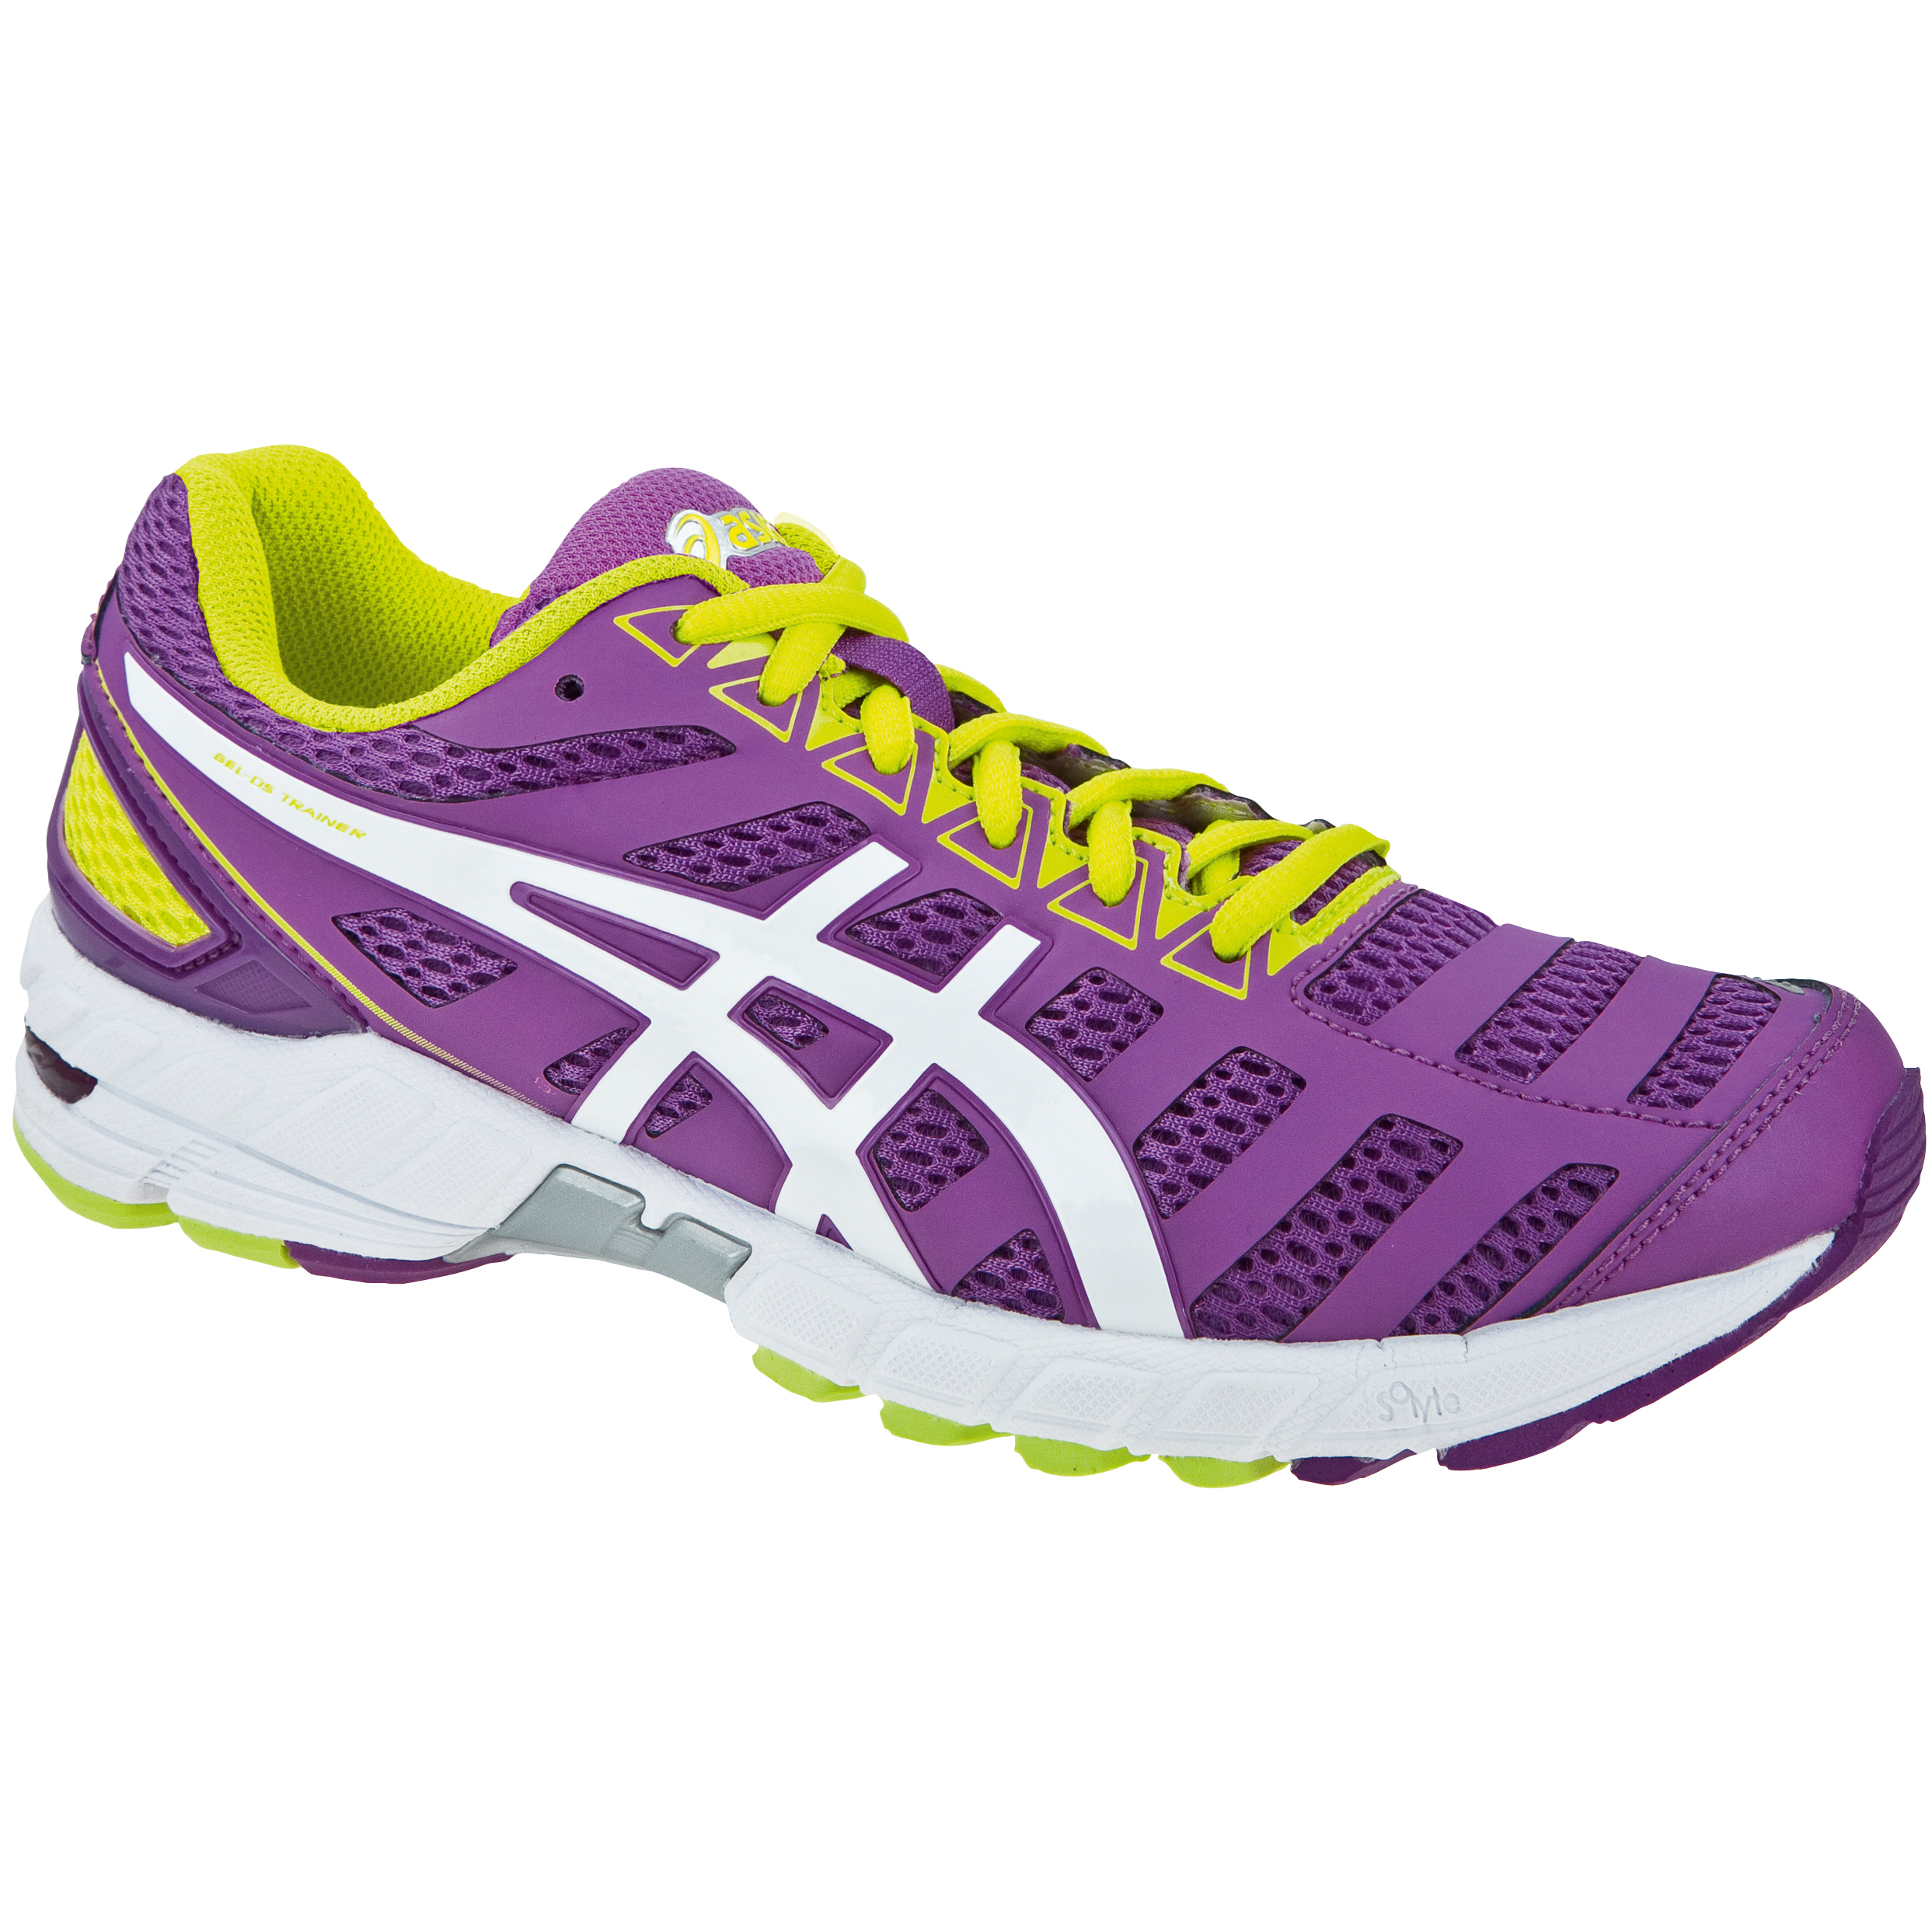 Buy asics ladies trainers \u003e Up to OFF65